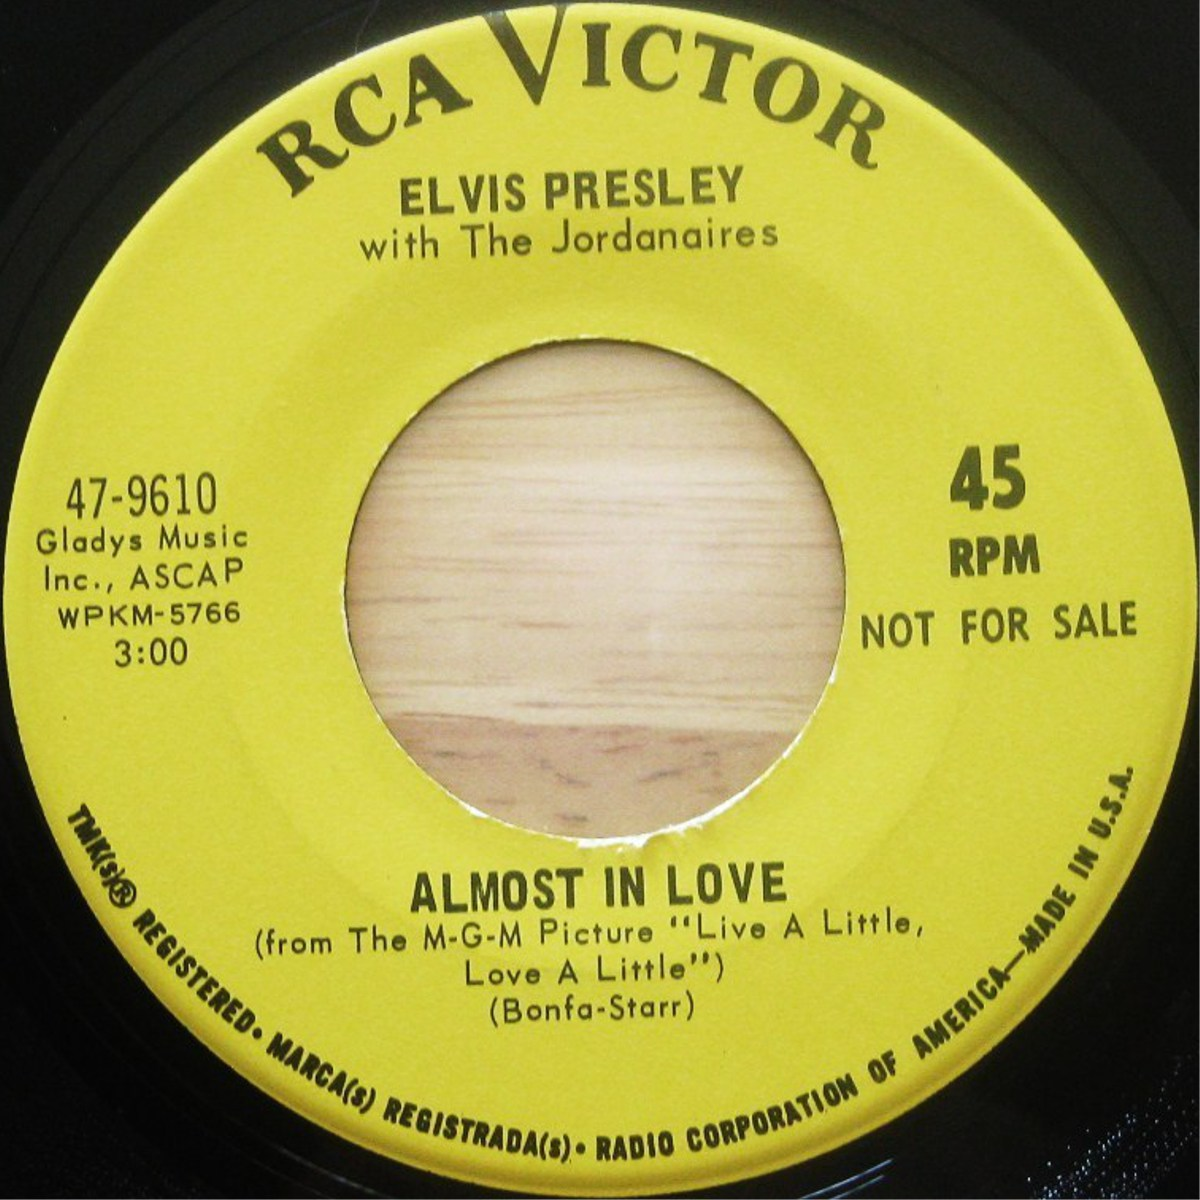 Almost In Love / A Little Less Conversation 47-9610bq2y2i